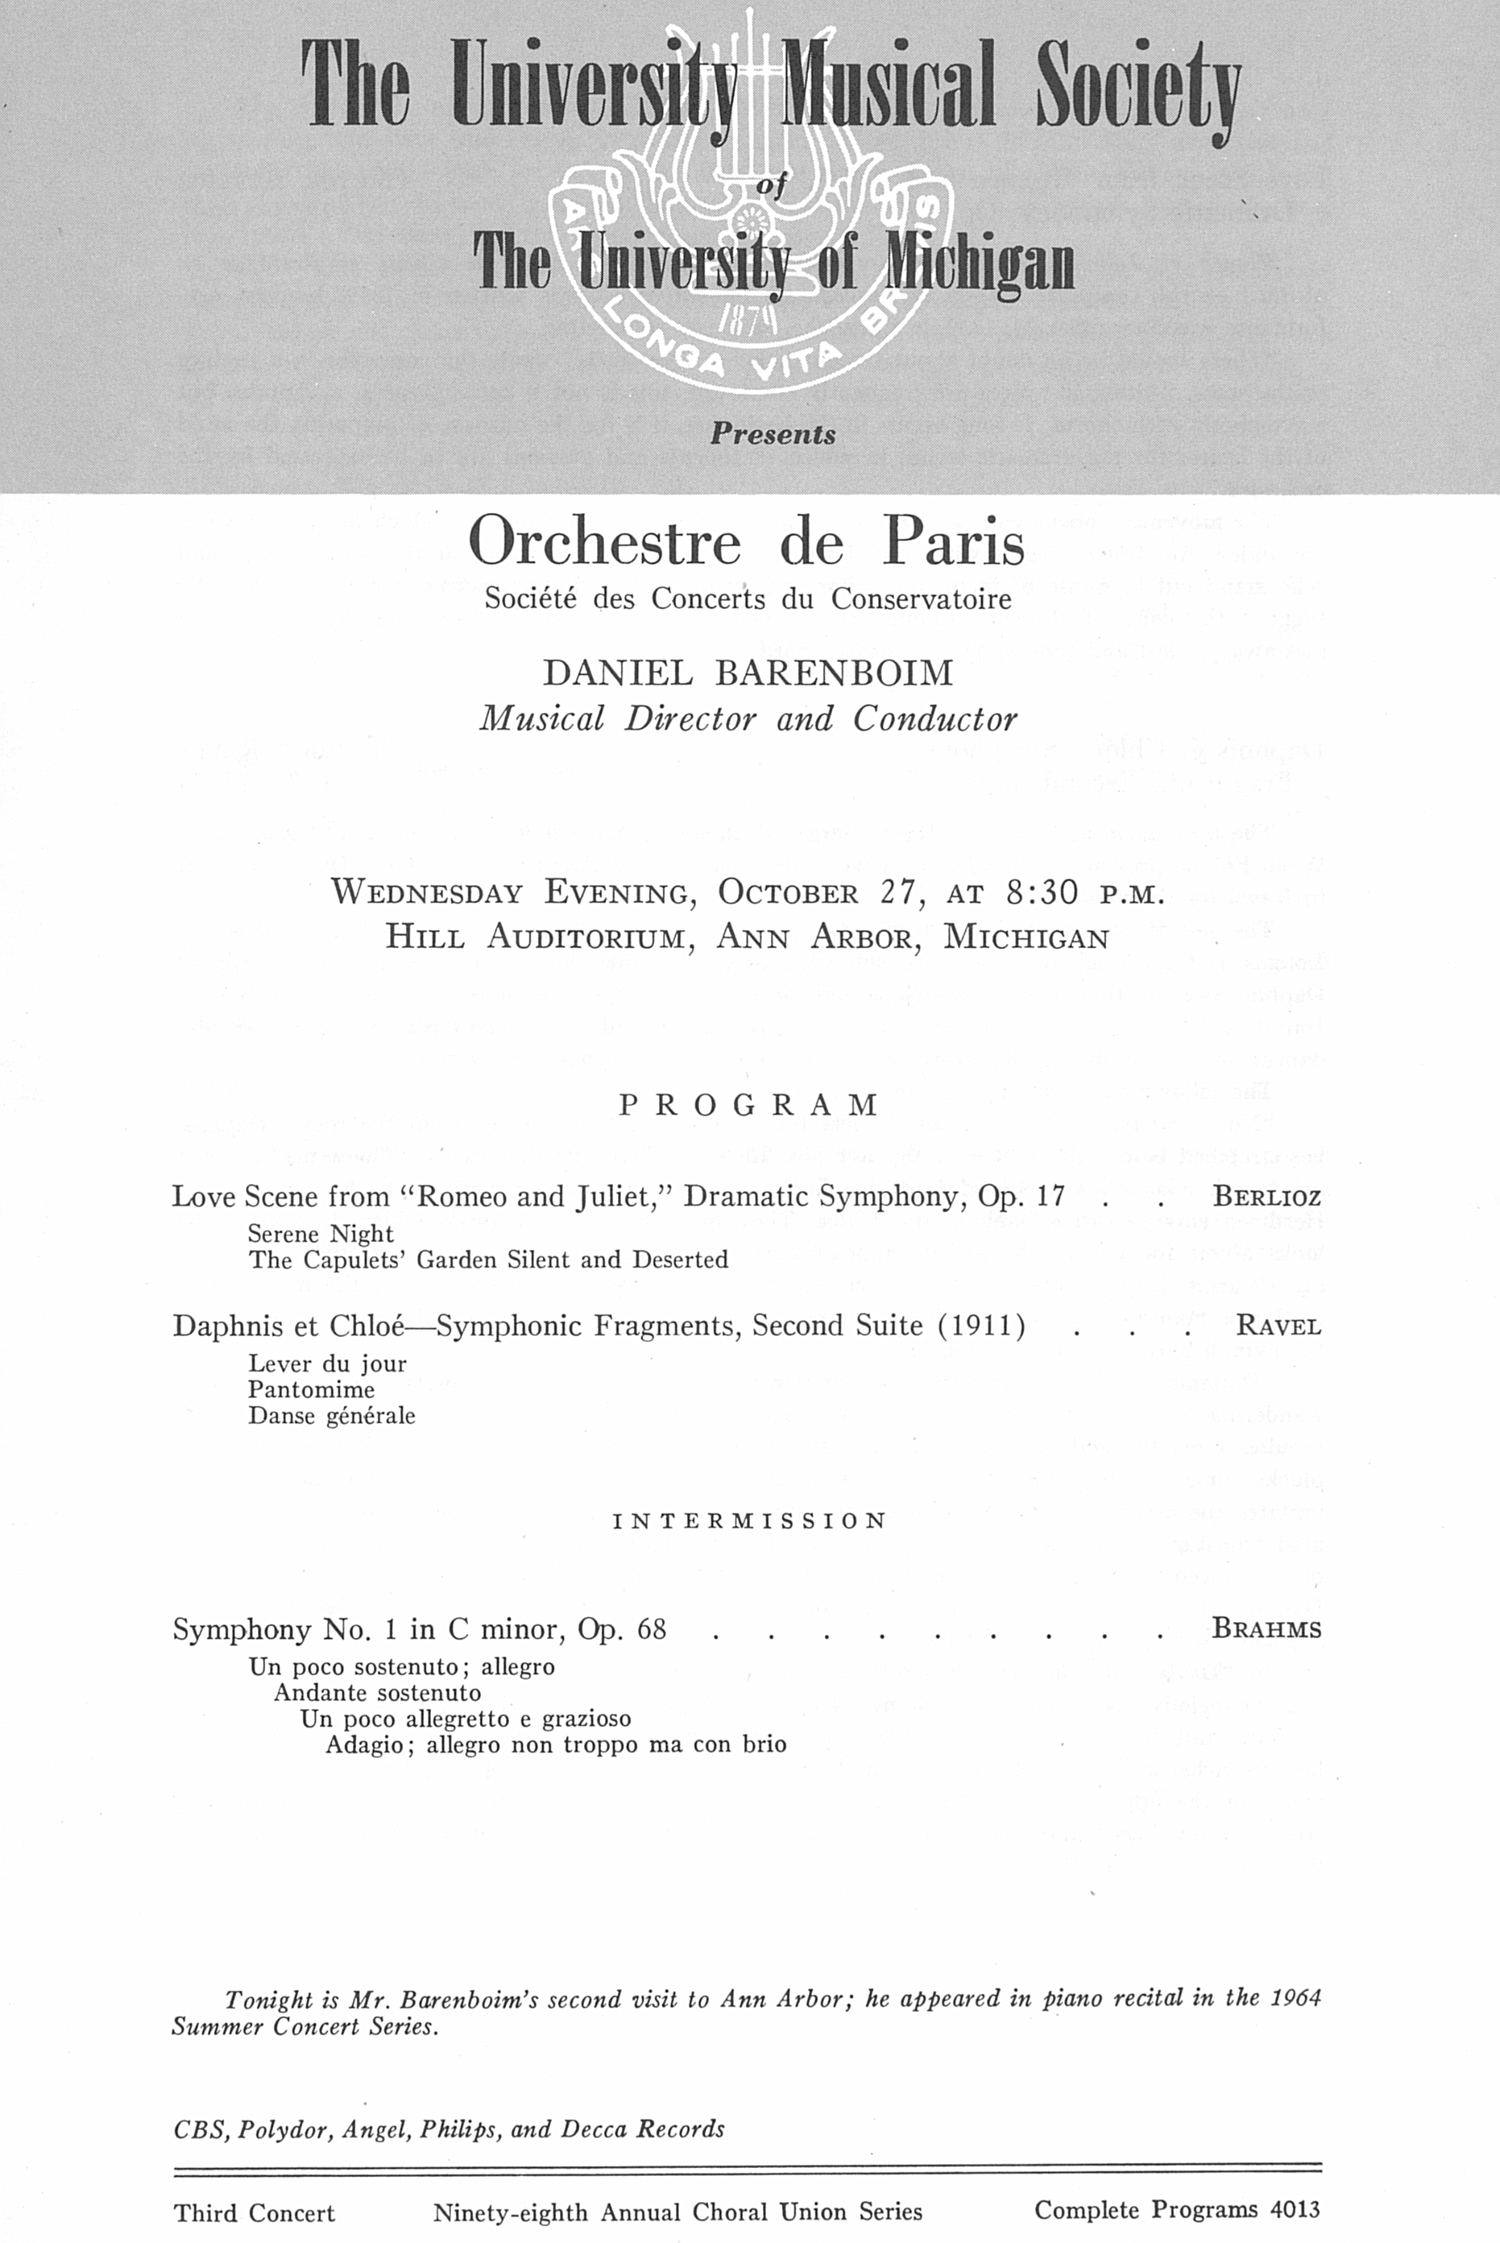 UMS Concert Program, October 27: Orchestre De Paris -- Daniel Barenboim image